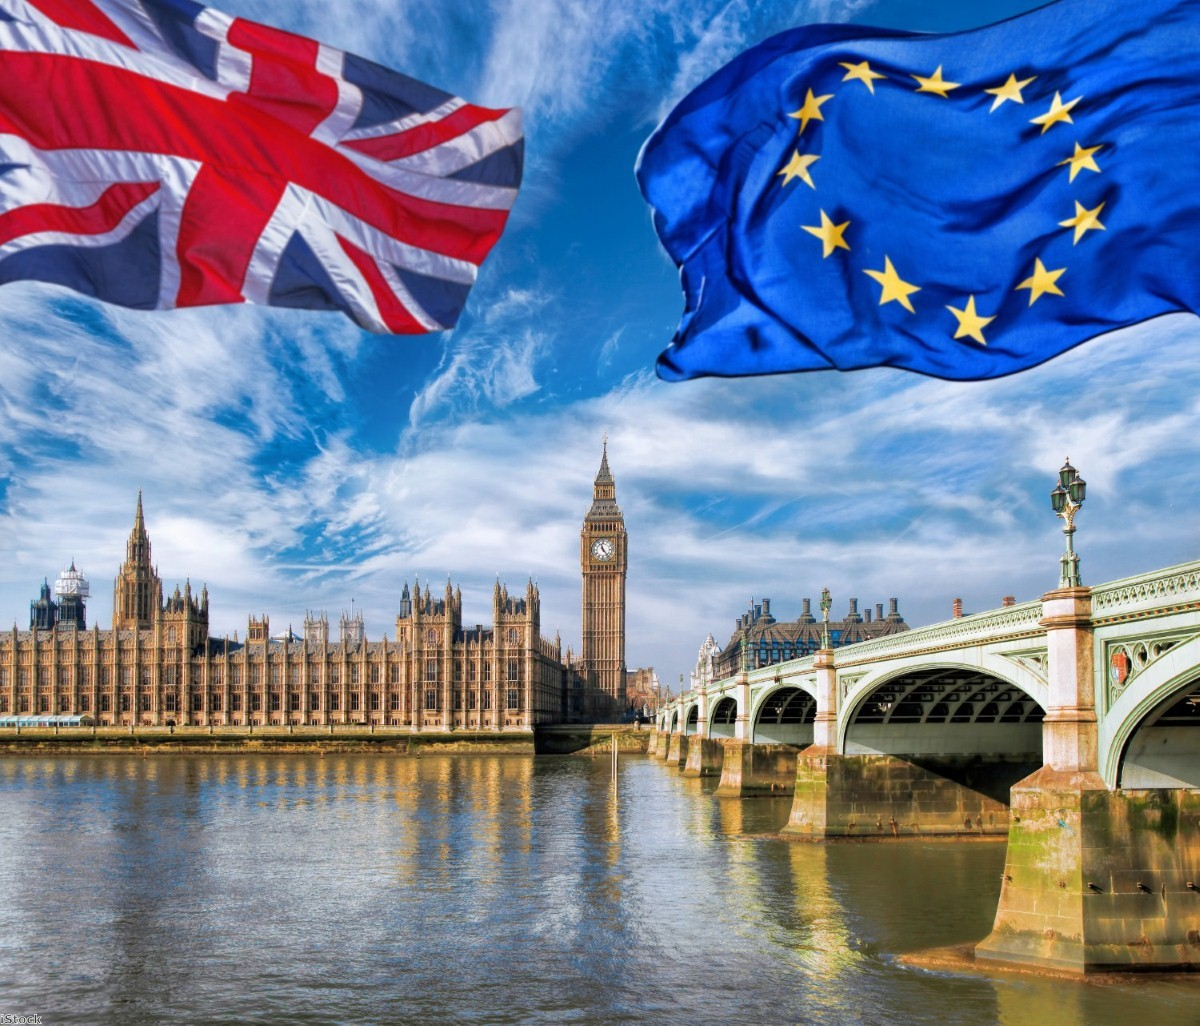 European Union and British Union flags flying against the Houses of Parliament   iStock